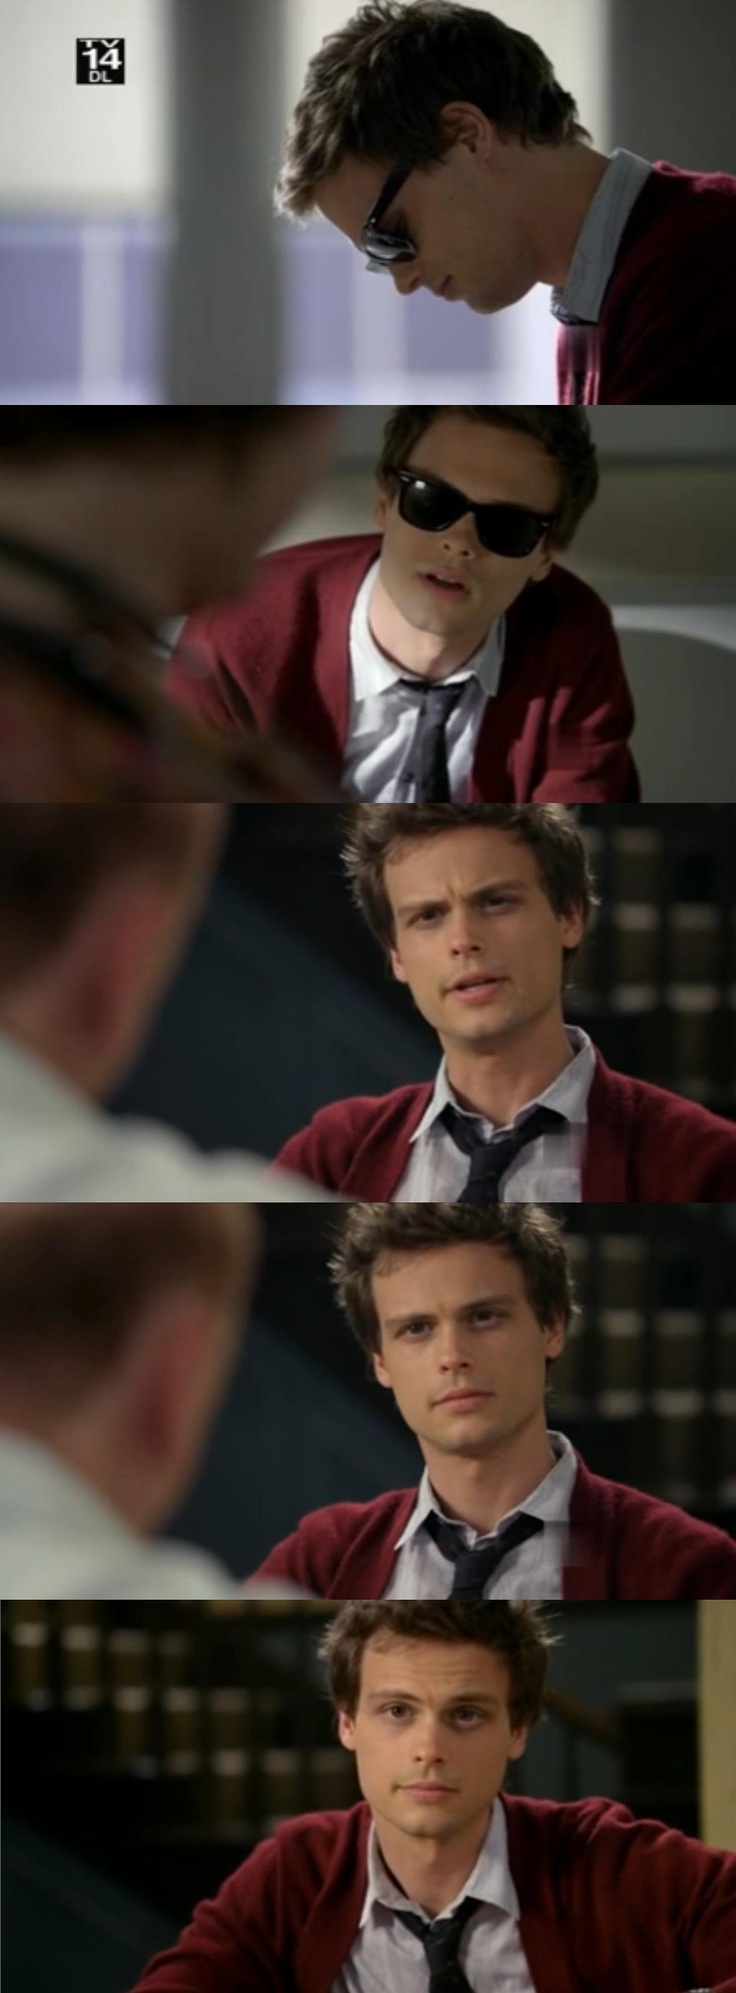 remember sixth season when Matthew Gray Gubler was a hottie mchottiepants and had short hair and wore sunglasses and pretty much solved crime with his beautiful face...yeah me too